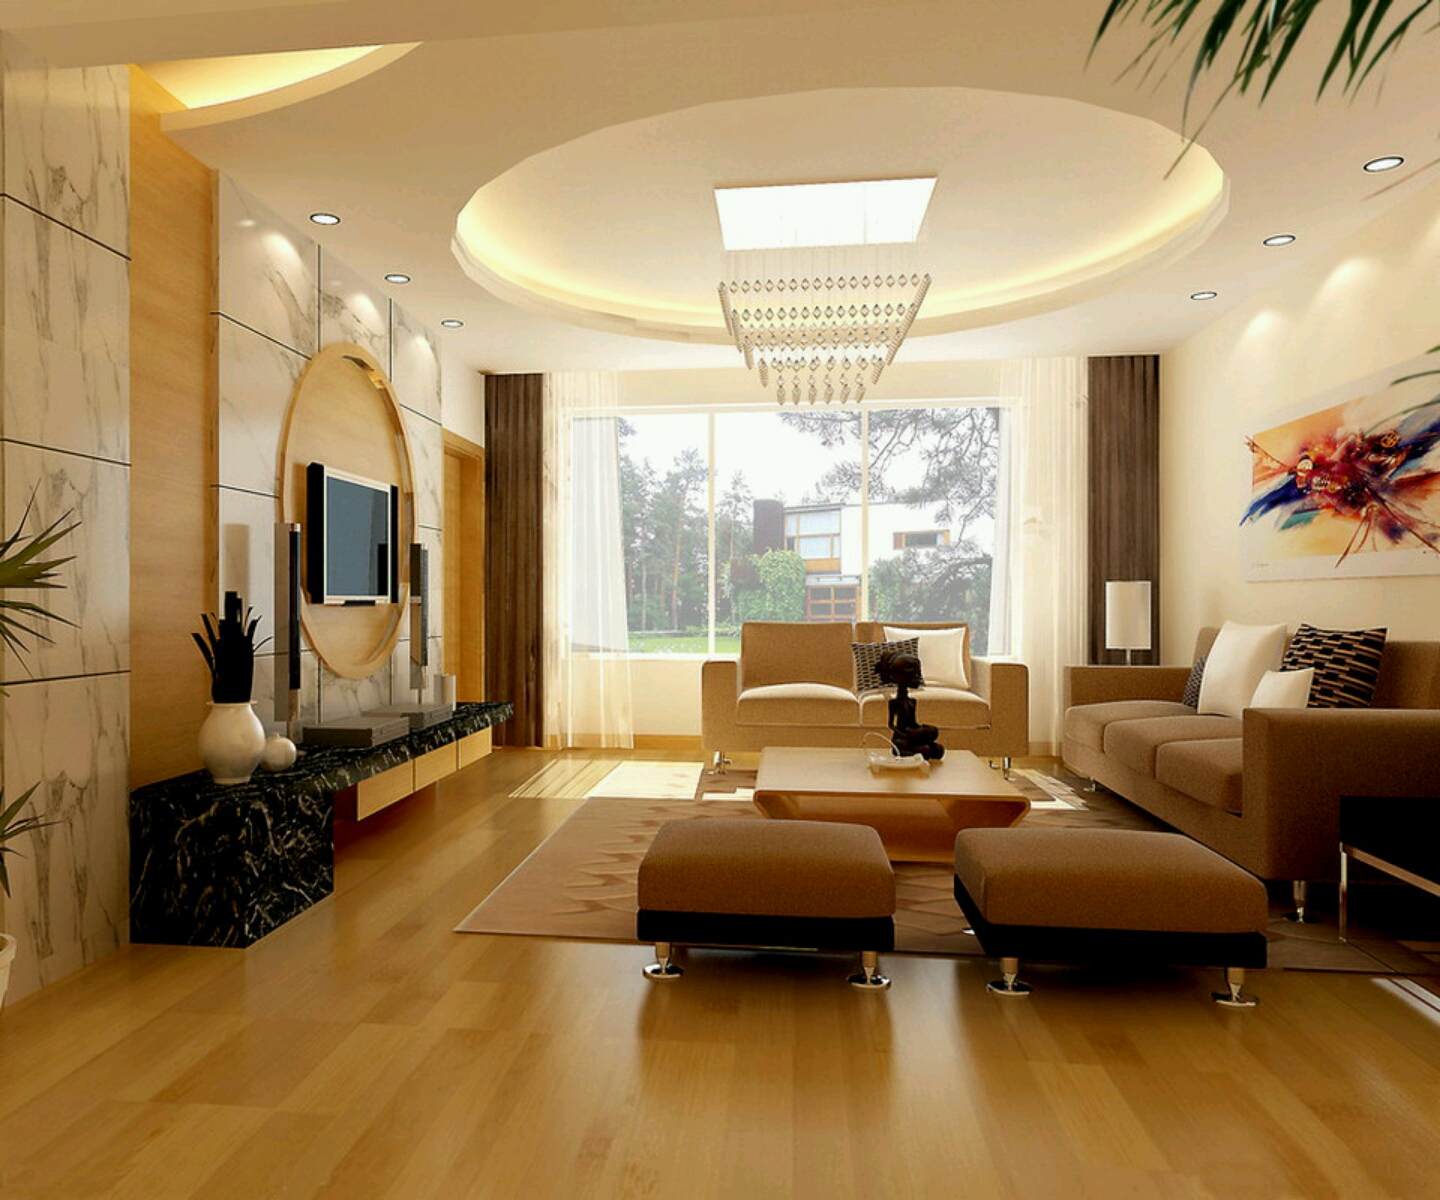 Modern interior decoration living rooms ceiling designs for Modern interior design ideas living room